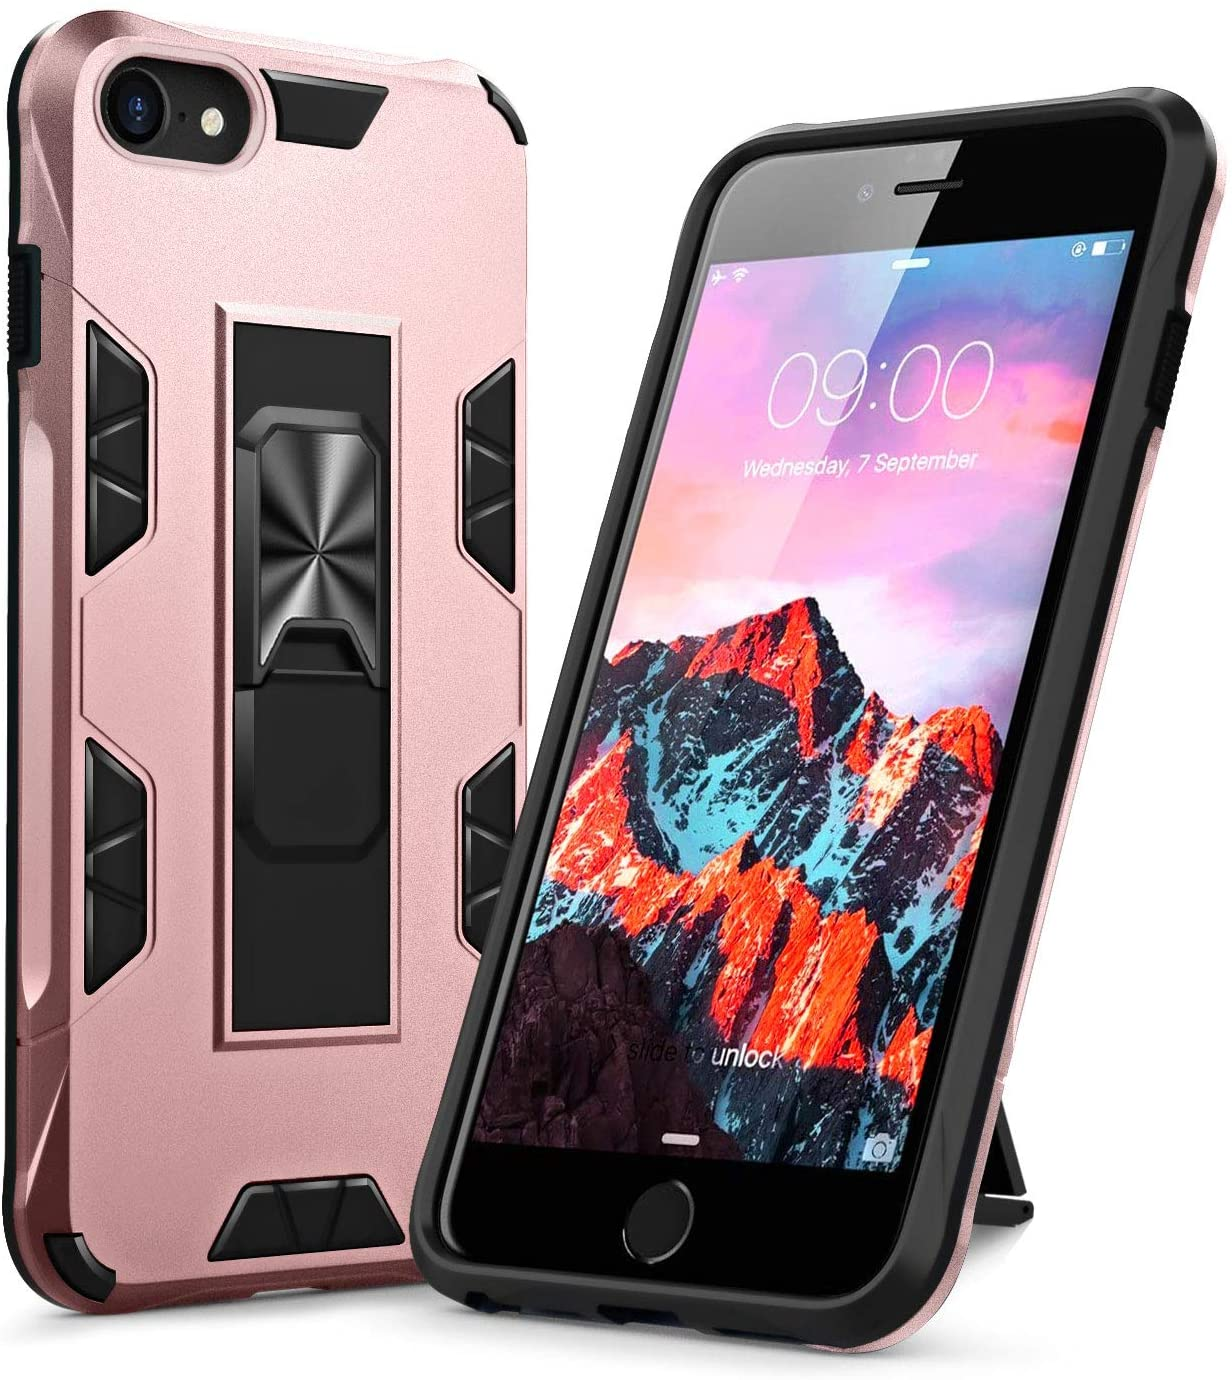 KUMEEK for iPhone SE 2020 Case, iPhone 8 Case, iPhone 7 Case, Kickstand Full Body Heavy Duty Shockproof Cover for iPhone SE 2020& iPhone 8/7 4.7 inch - Rose Gold